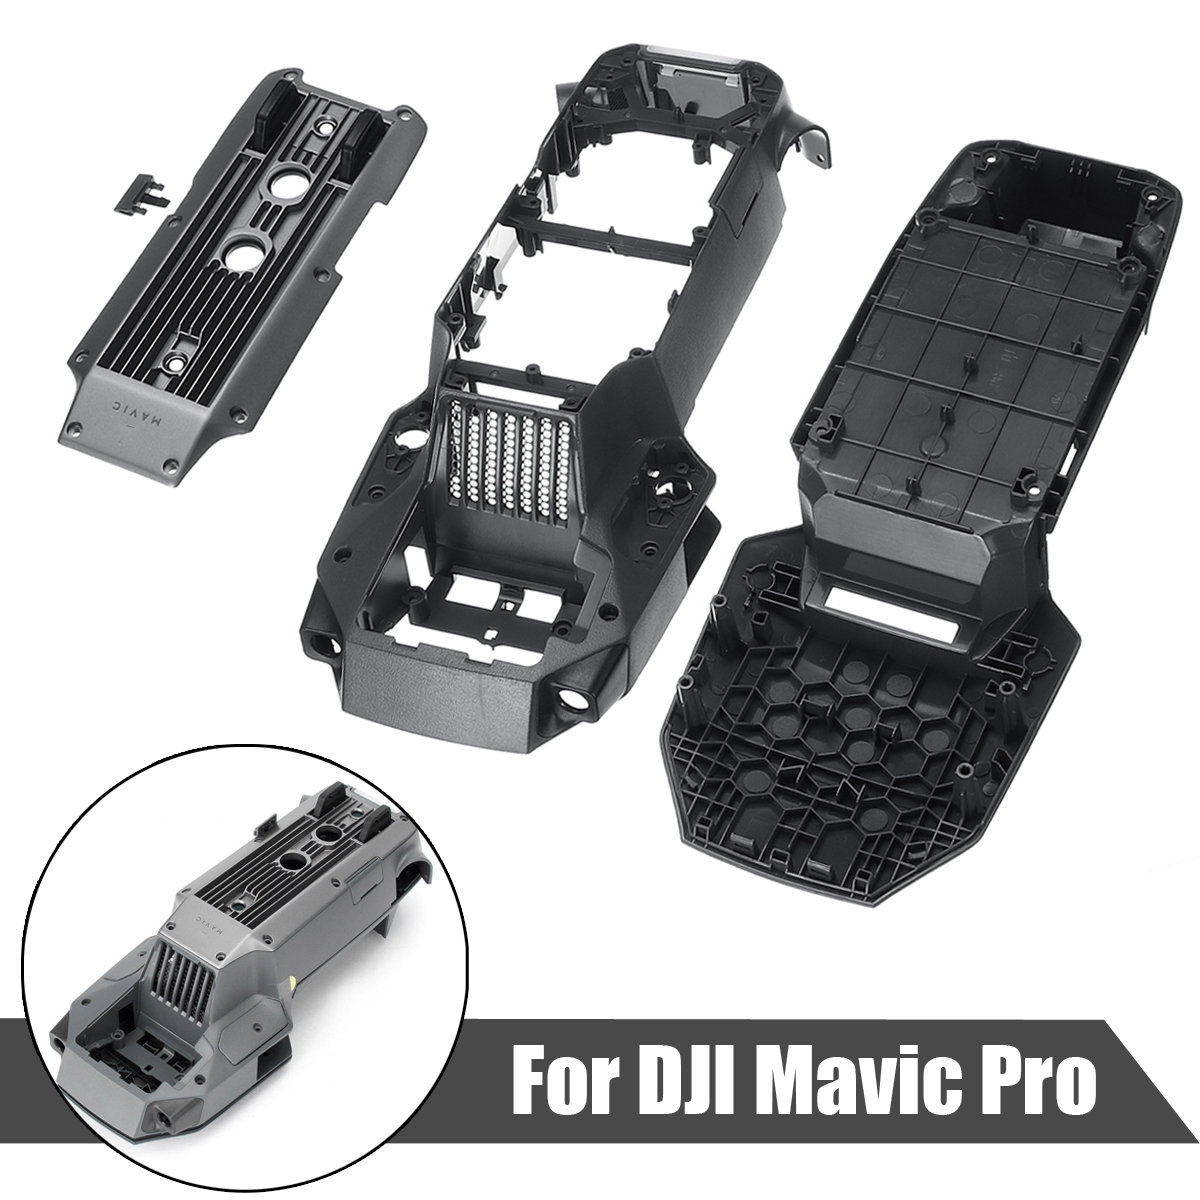 Top Shell Middle Frame Bottom Cover Repair For DJI Mavic Pro